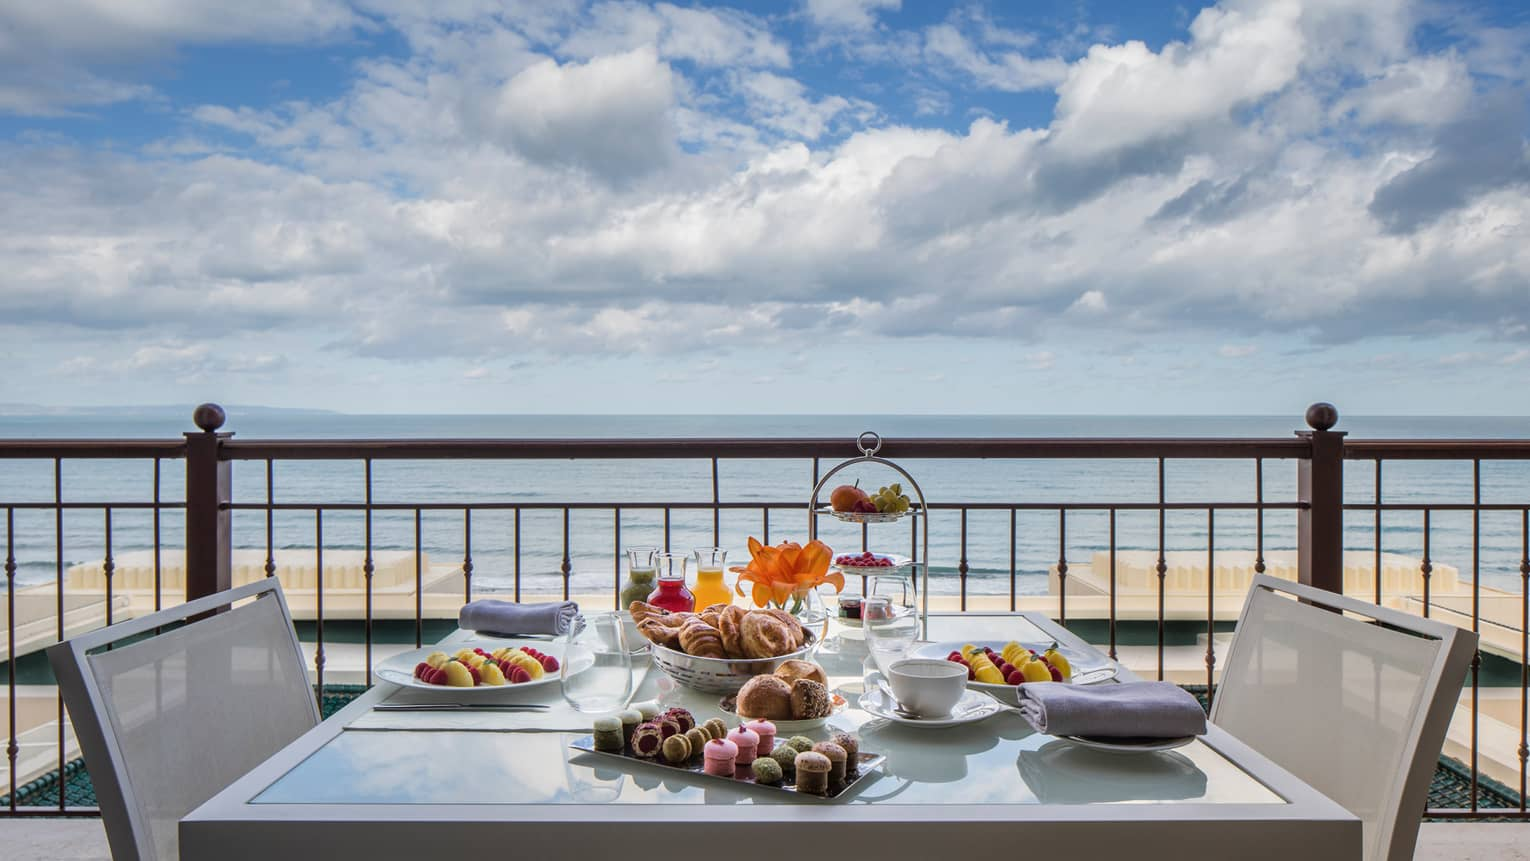 Balcony table set with fresh pastries, cakes, fruits, sea in background